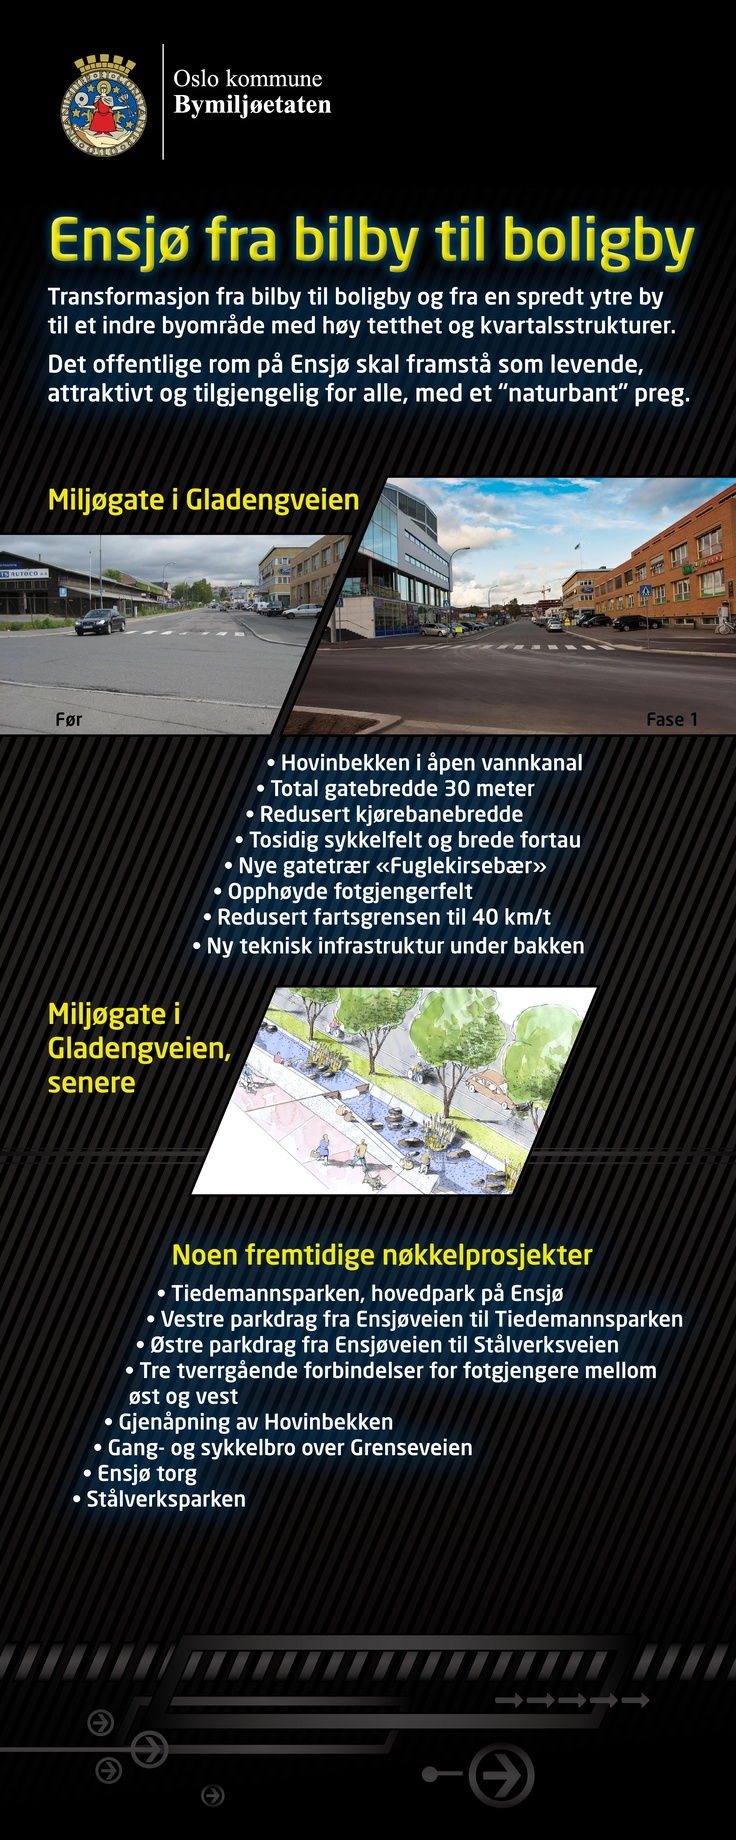 "Transformation from an area with business for cars to a residential area, where the public sphere in Ensjø will be represented as attractive and accessible to everyone with an ""urban nature"" feeling. Oslo, Norway. Picture before and after  (2 of 2 rollups)."